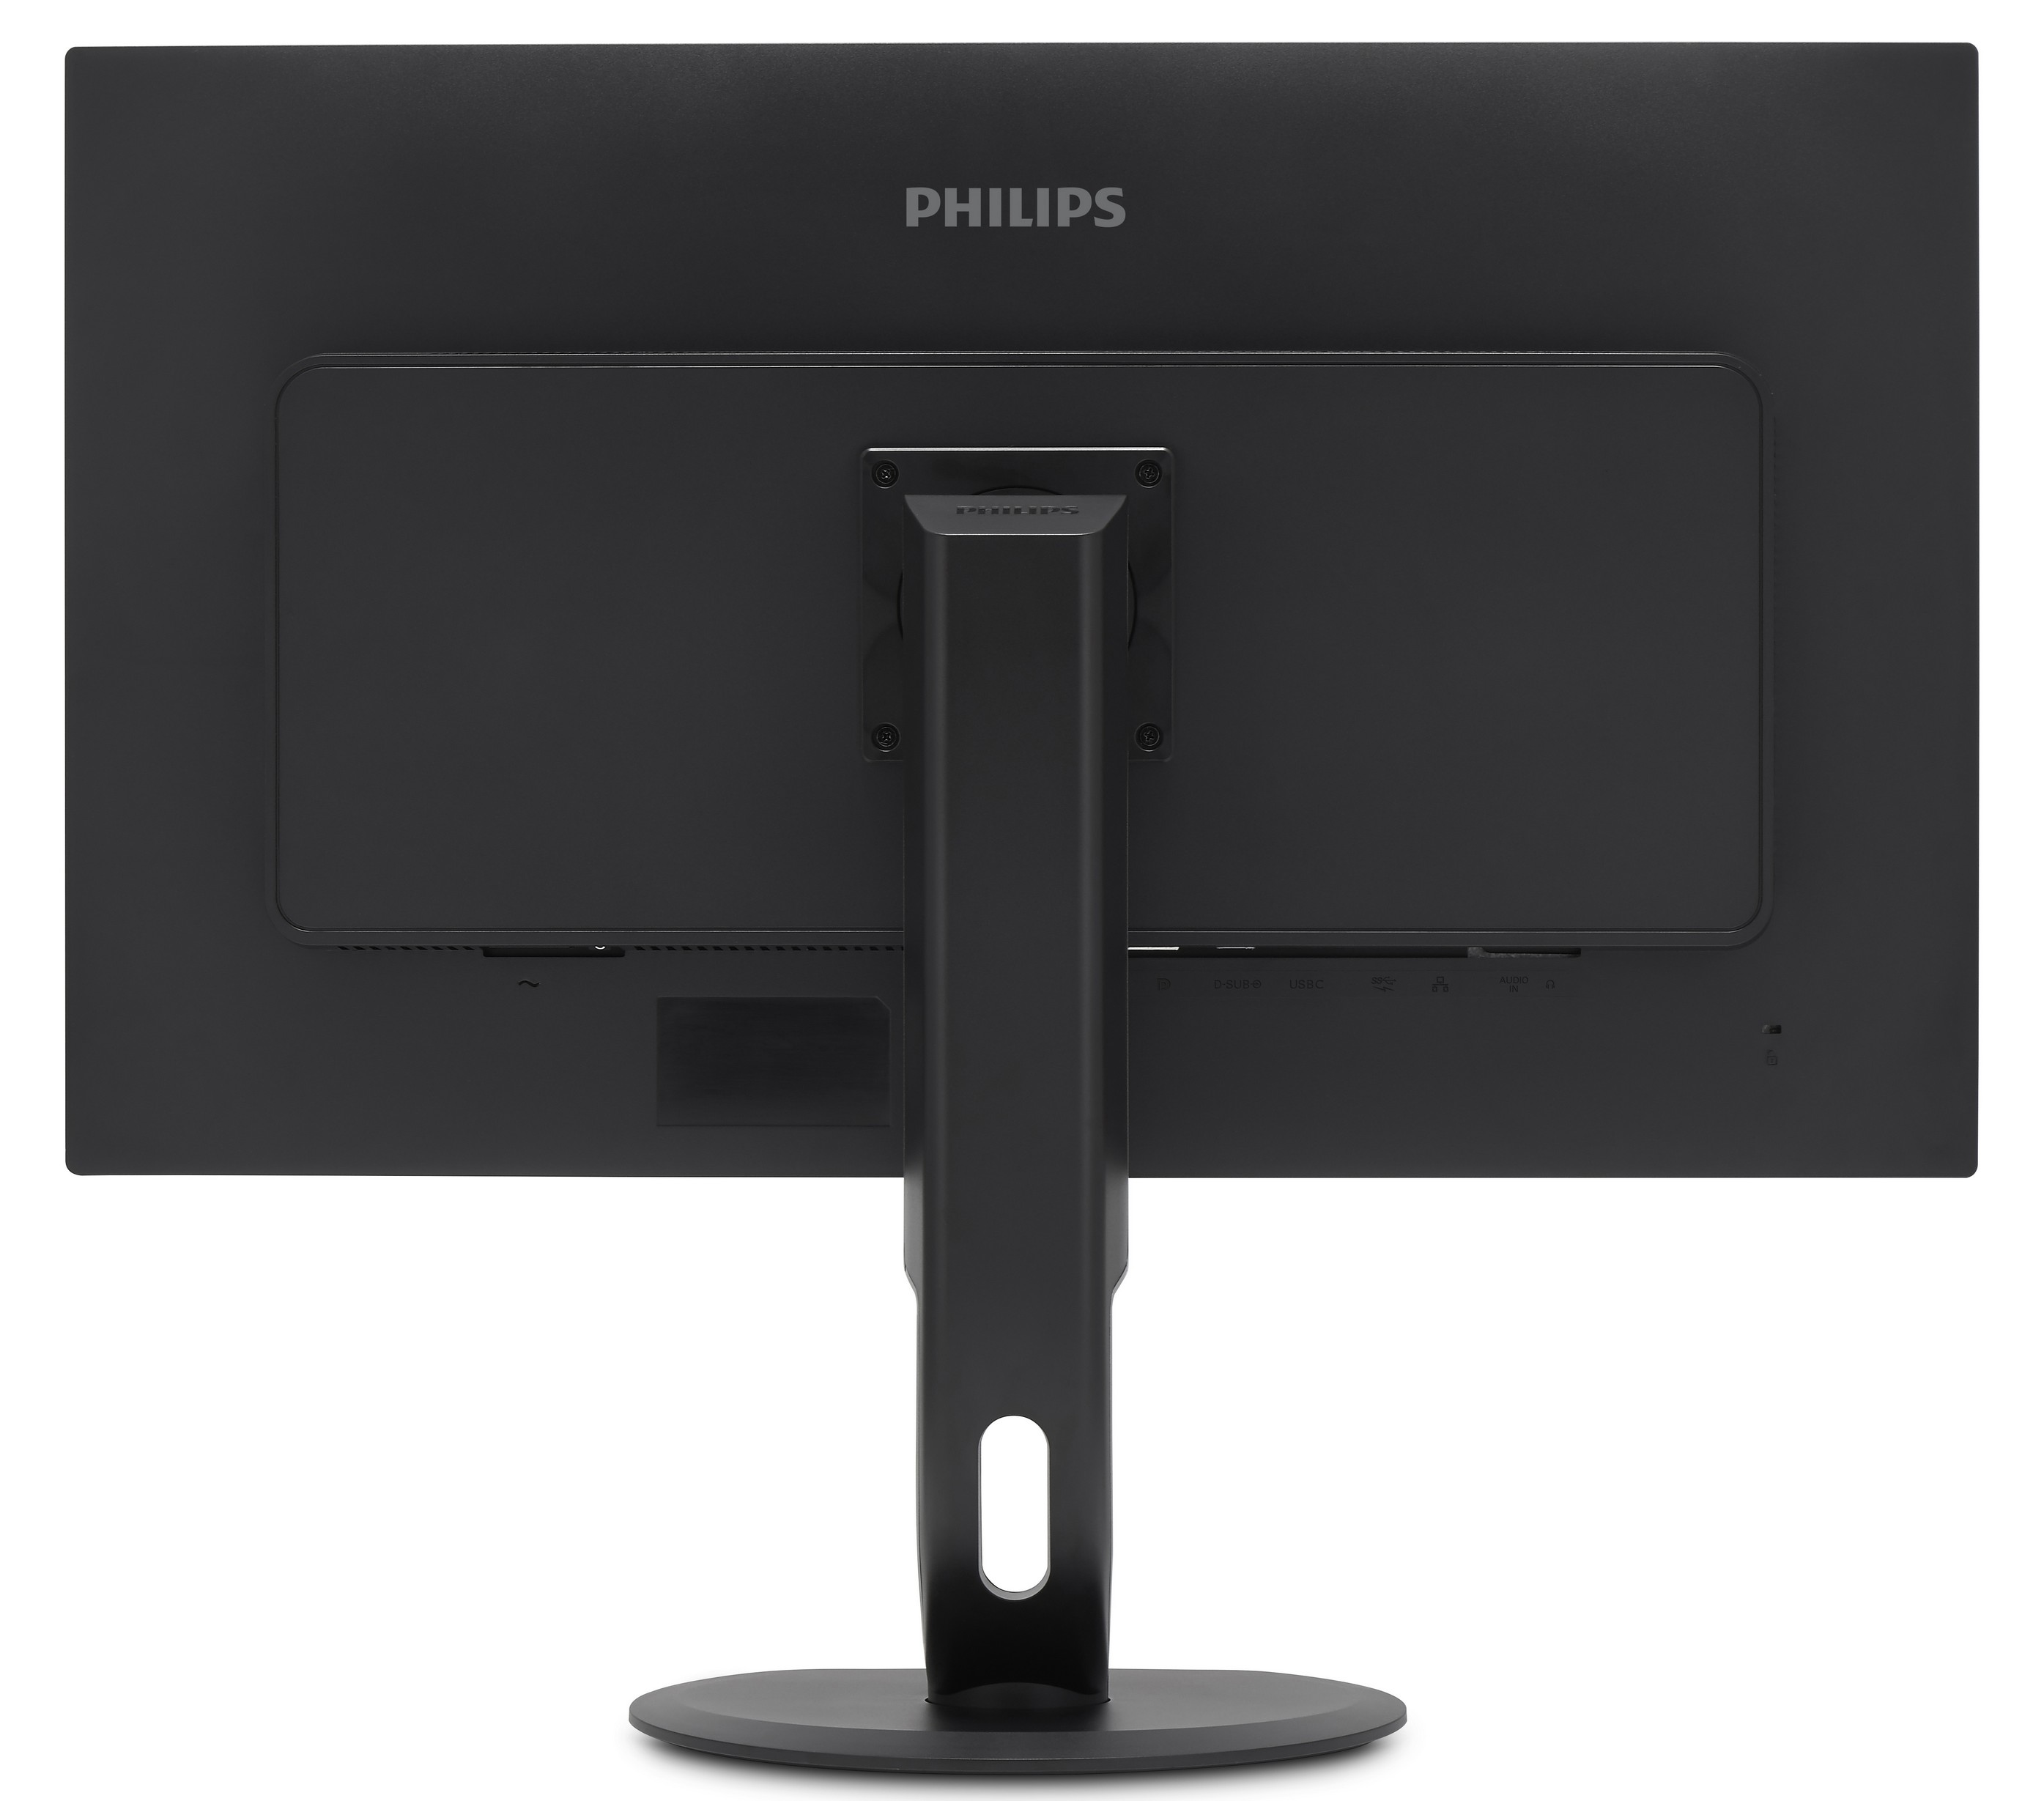 Novi Philips monitor